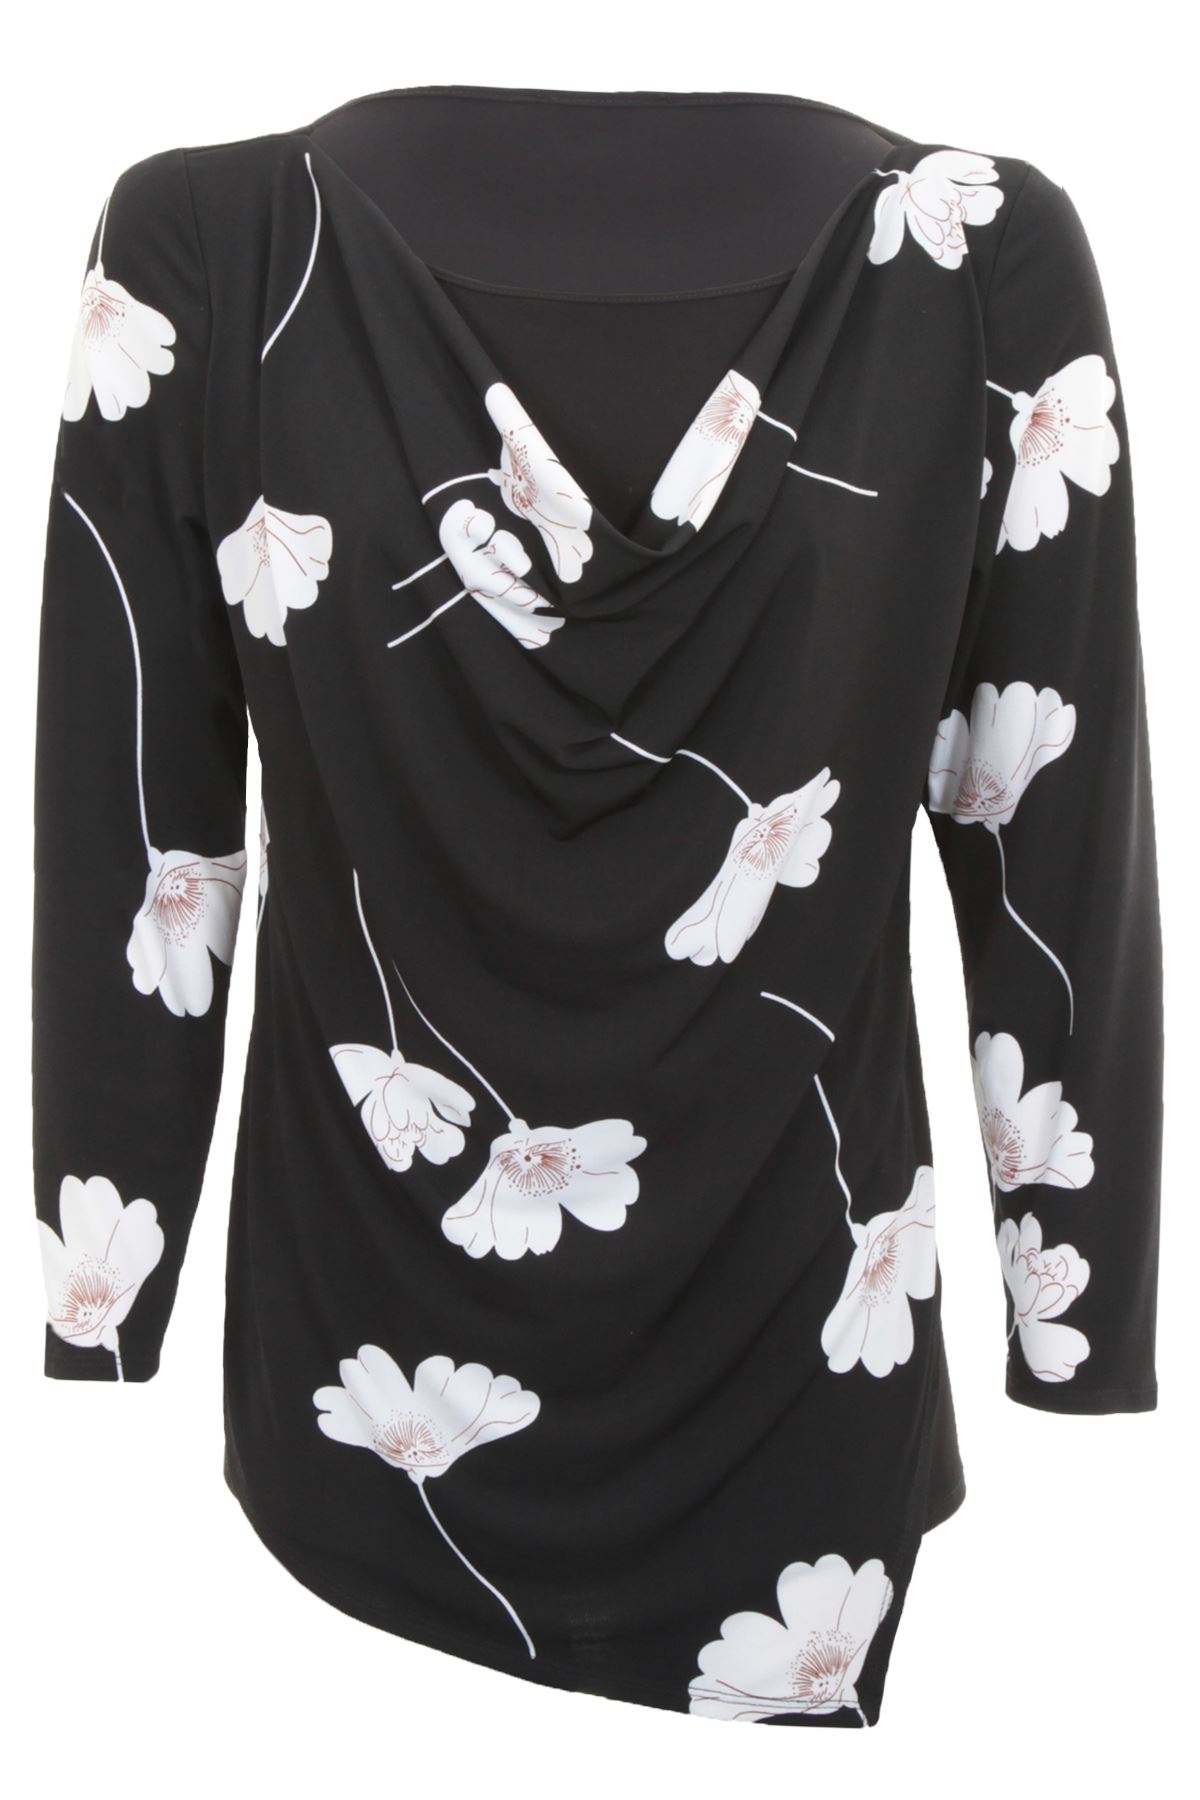 F47 NEW WOMENS FLORAL PRINT BLOUSE LADIES COLLAR CHIFFON COWL NECK DRESS TOP.